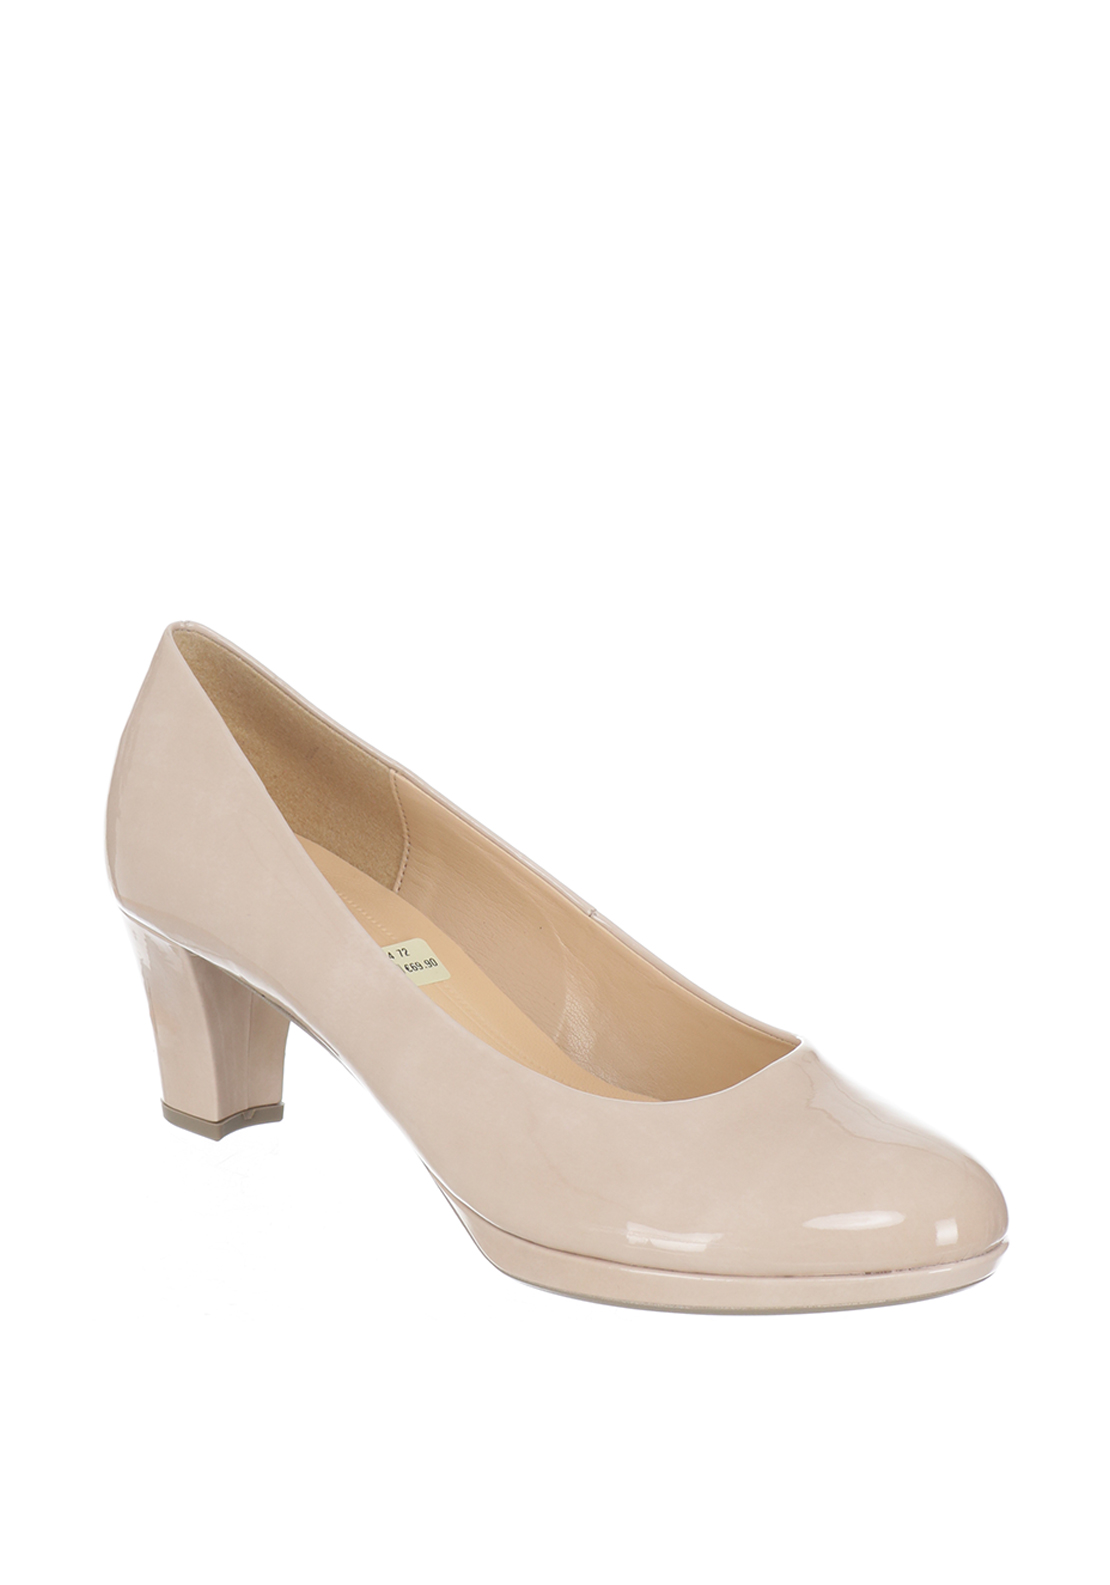 Gabor Patent Block Heeled Court Shoes, Nude